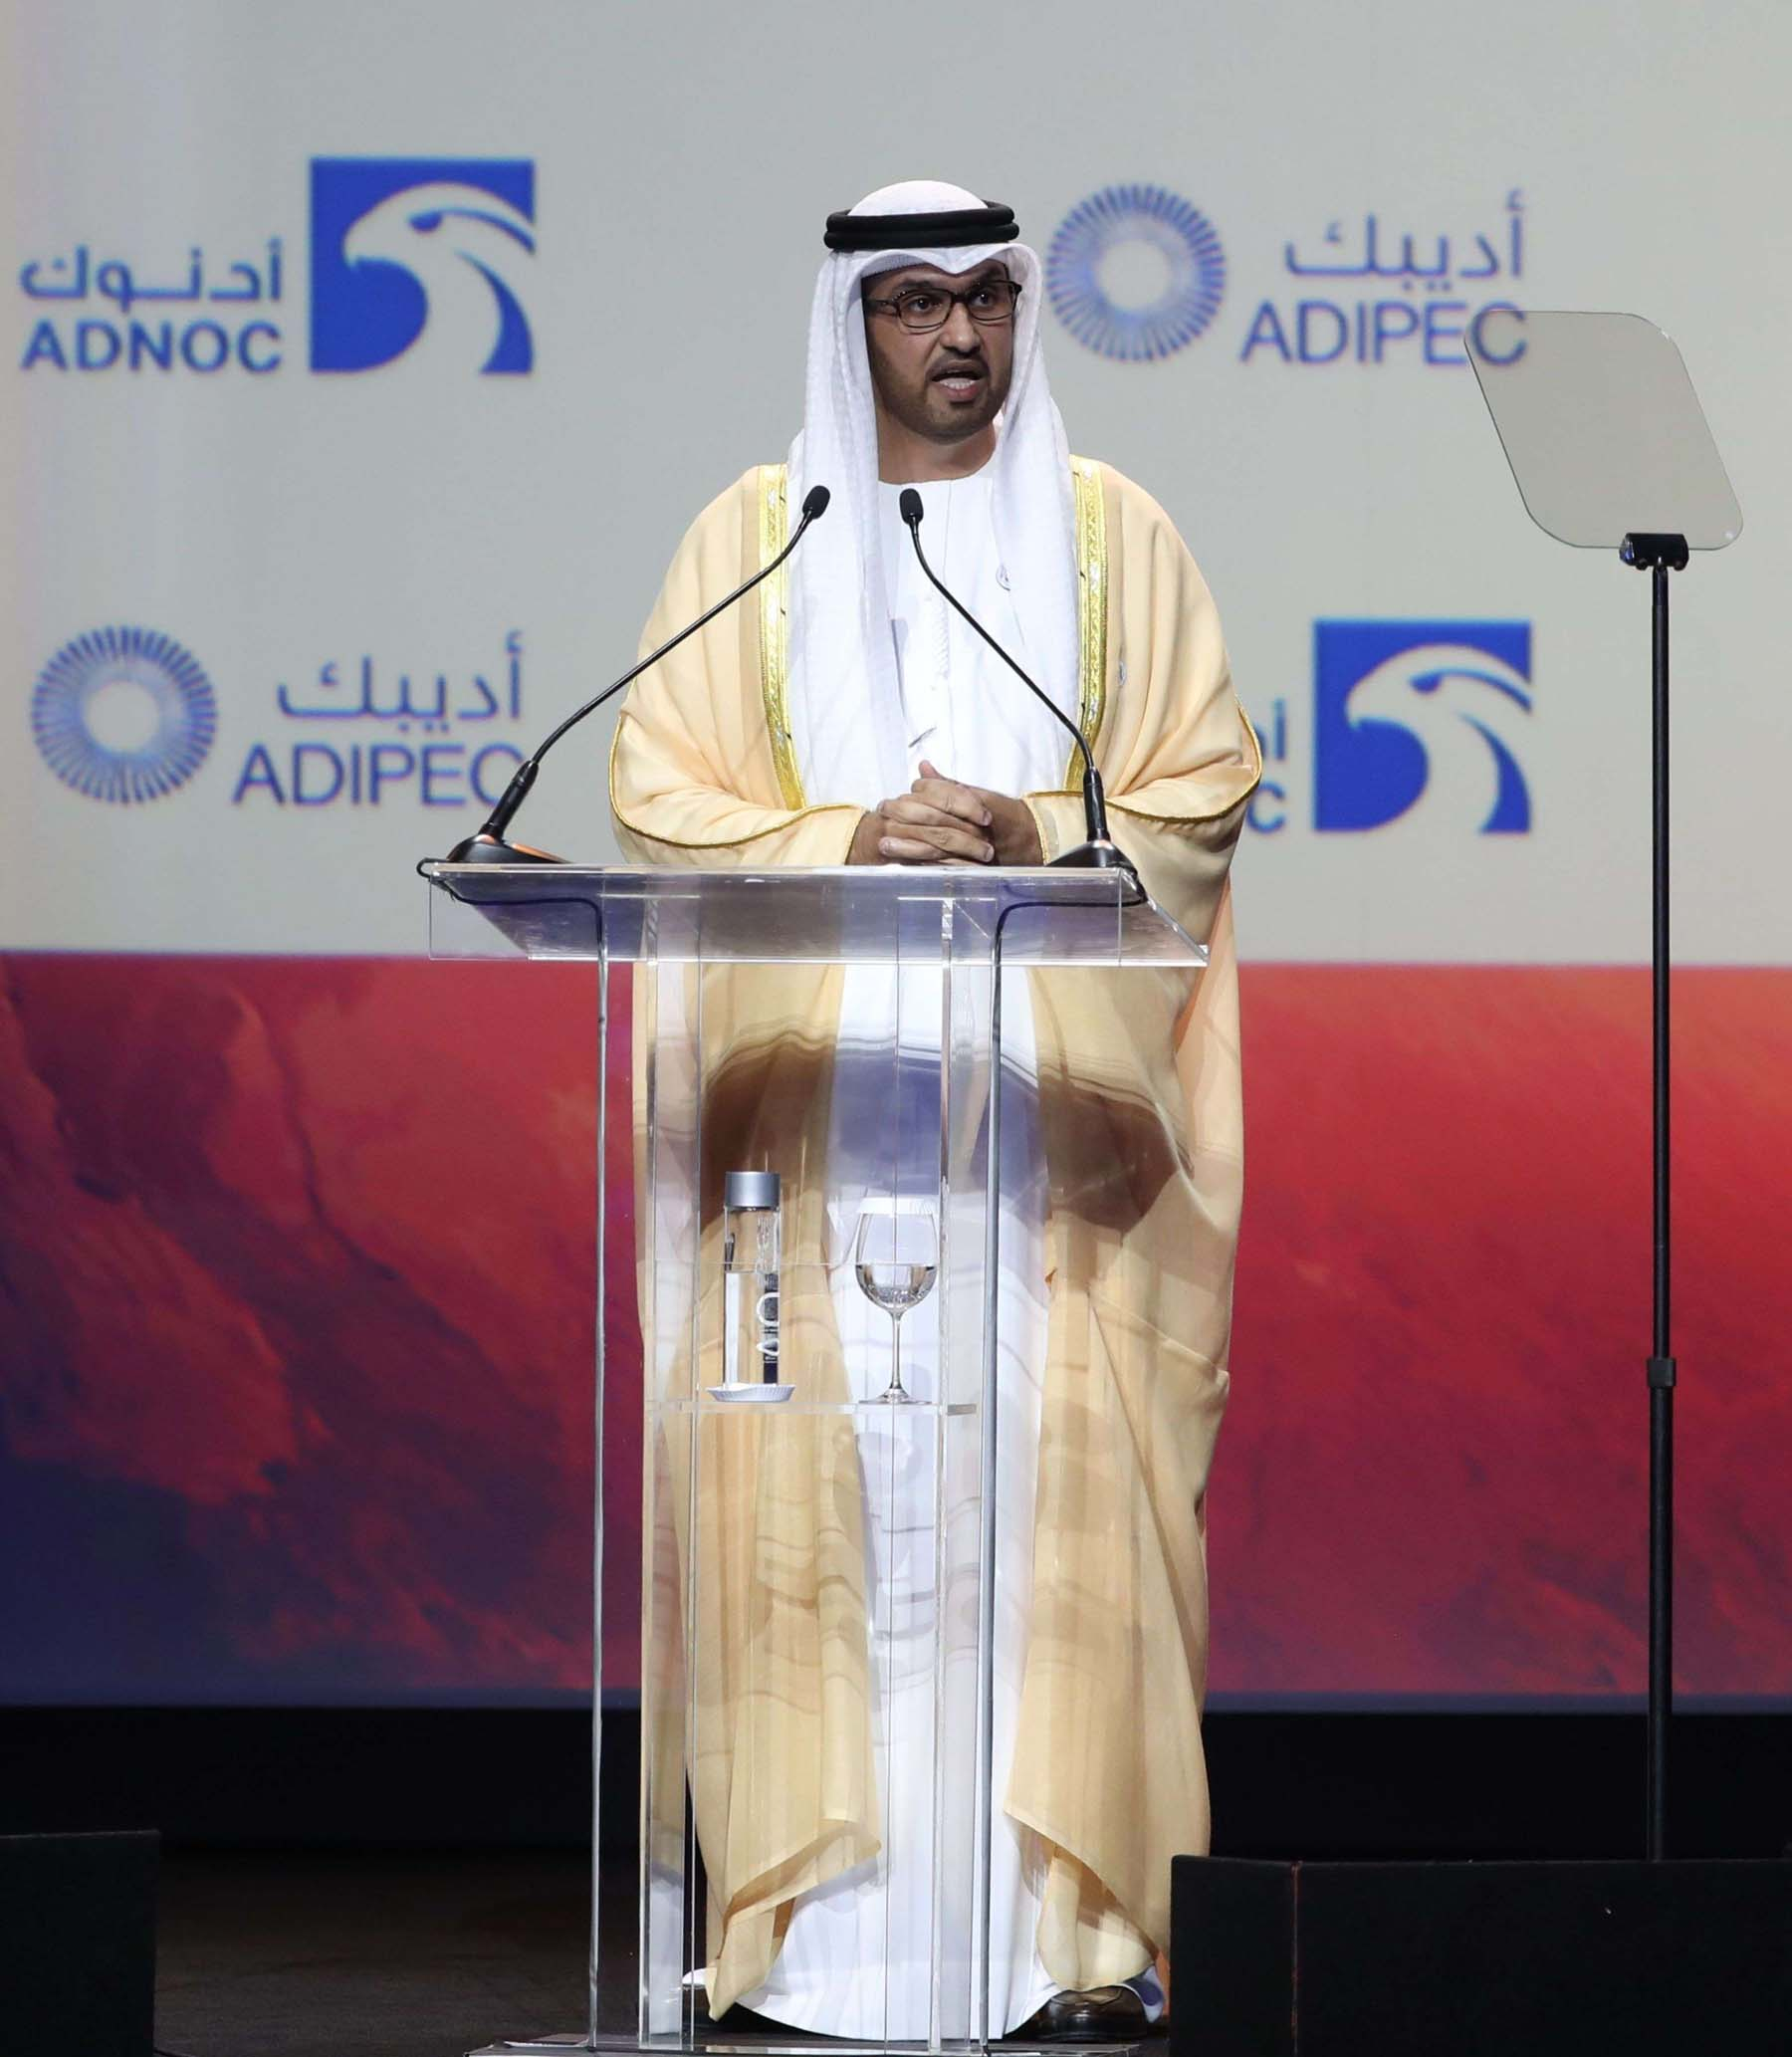 ADNOC Group CEO Sultan Ahmed al-Jaber speaks during the Abu Dhabi International Petroleum Exhibition and Conference (ADIPEC), on November 12. (AFP)